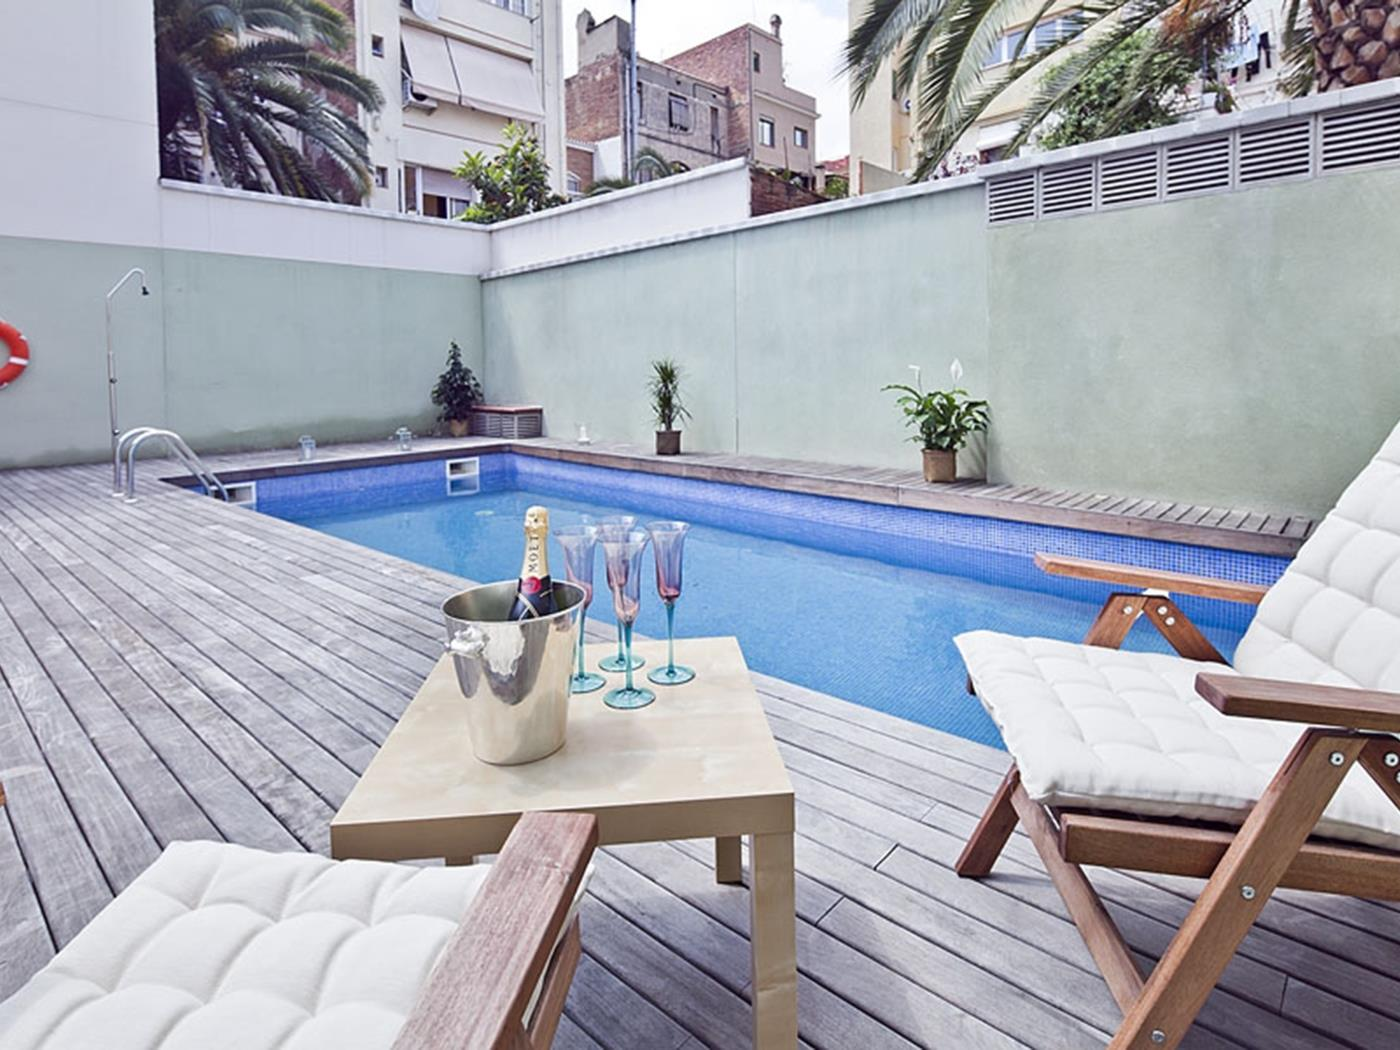 Terrace and pool apartment near the Barcelona centre - My Space Barcelona Mieszkanie